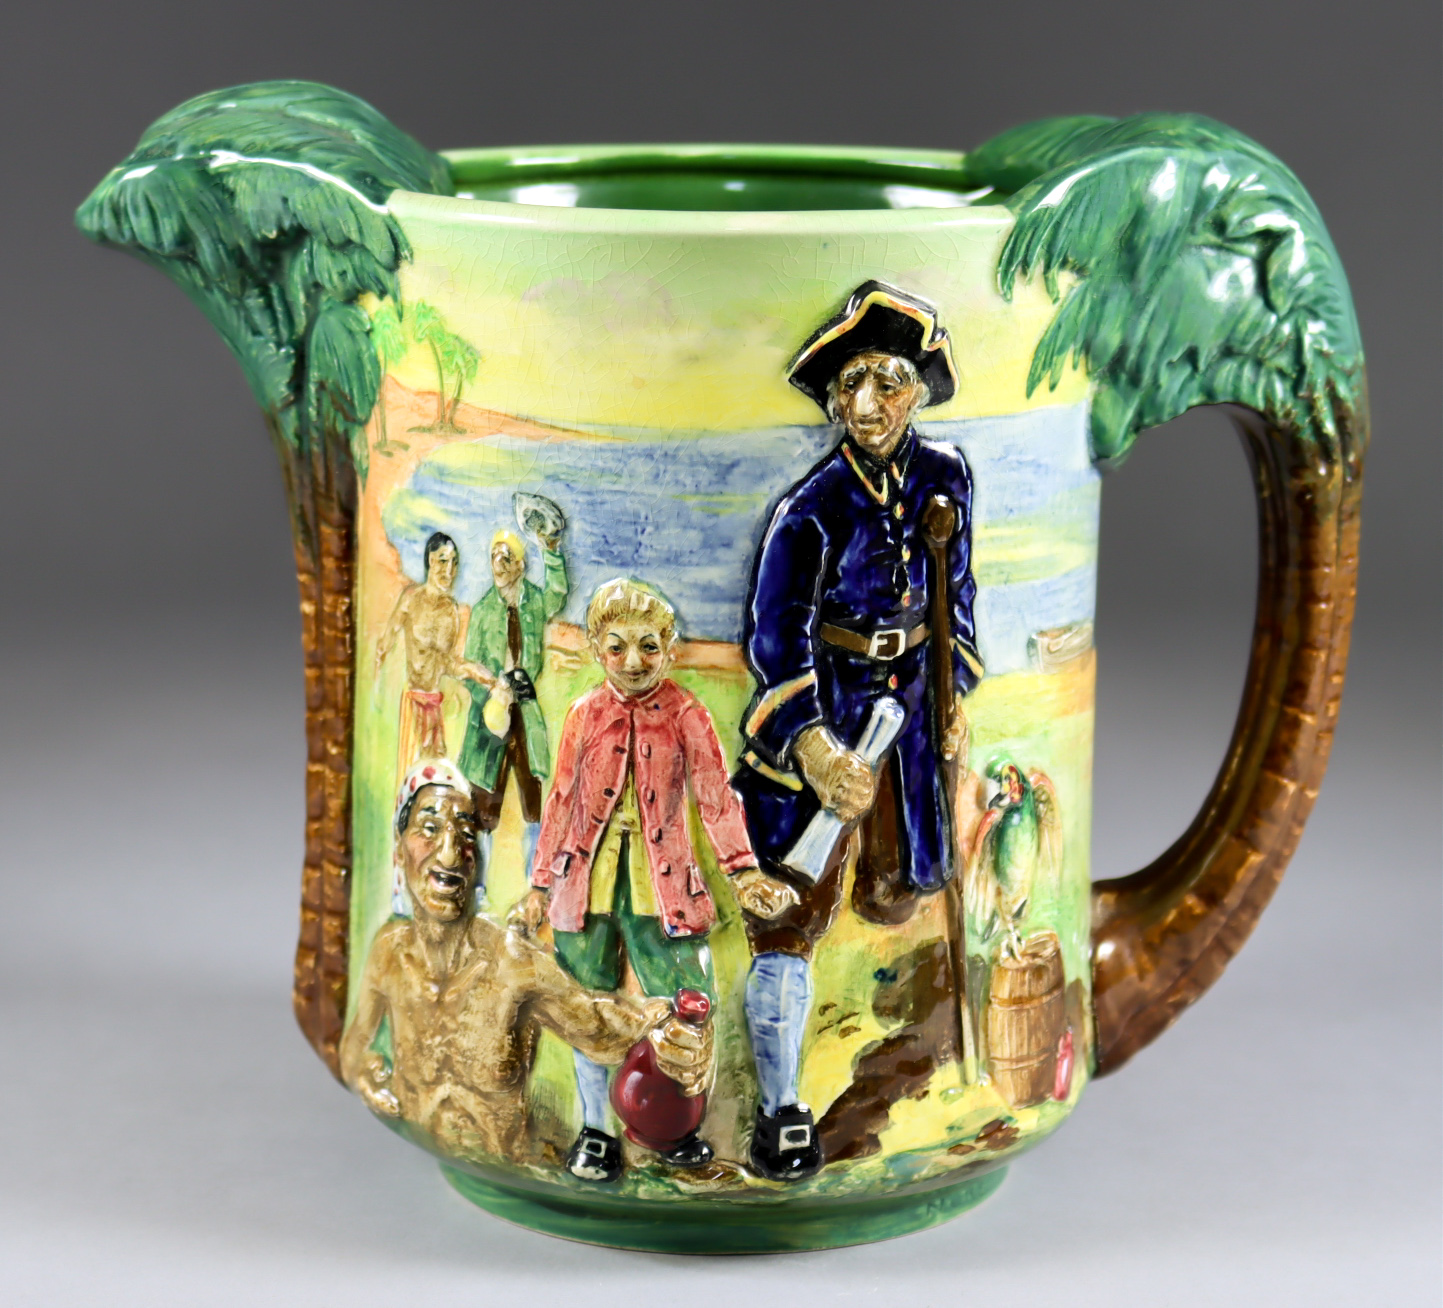 A Royal Doulton Pottery Treasure Island Jug, No. 48 of 600, Introduced in 1934, modelled by